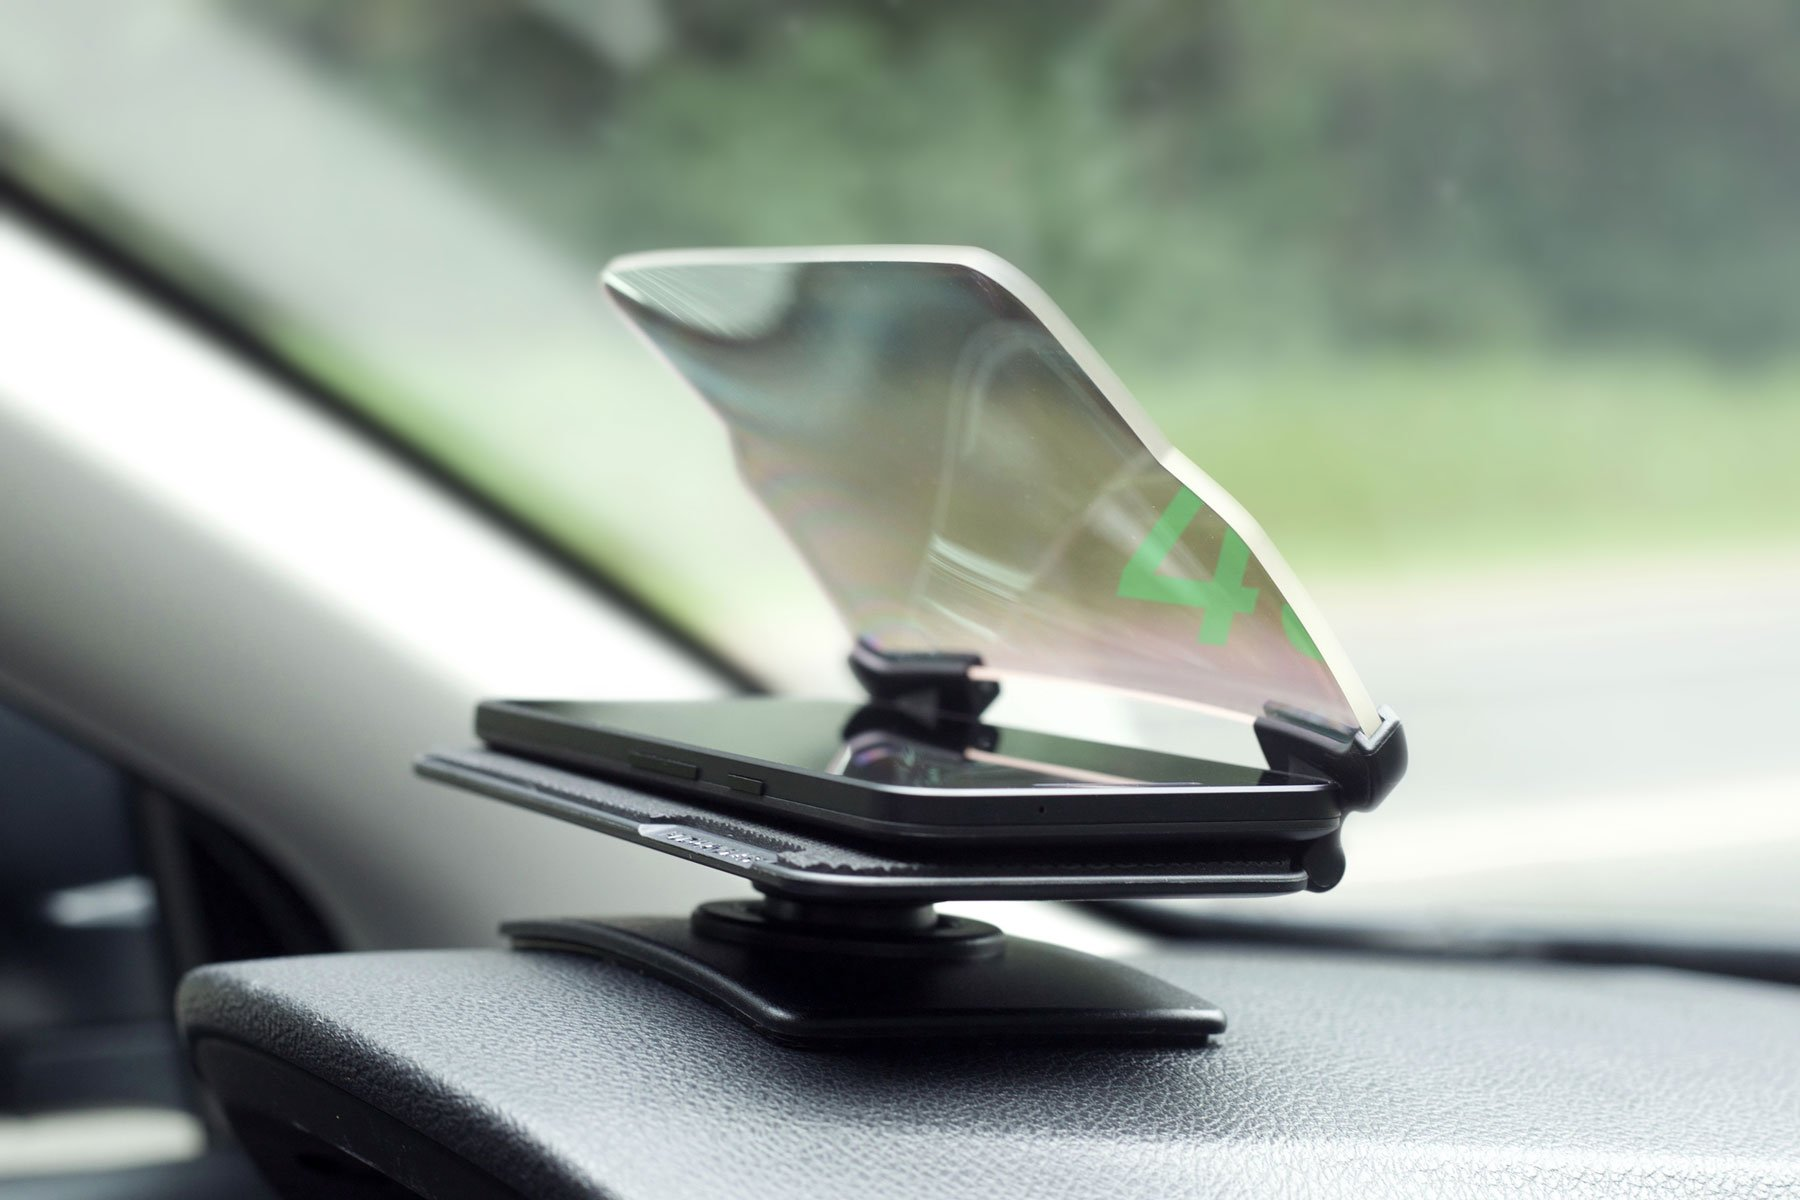 HUDWAY Glass - Universal Head-Up Display (HUD) for GPS Navigation for Any Car. Smartphone Apps Included.